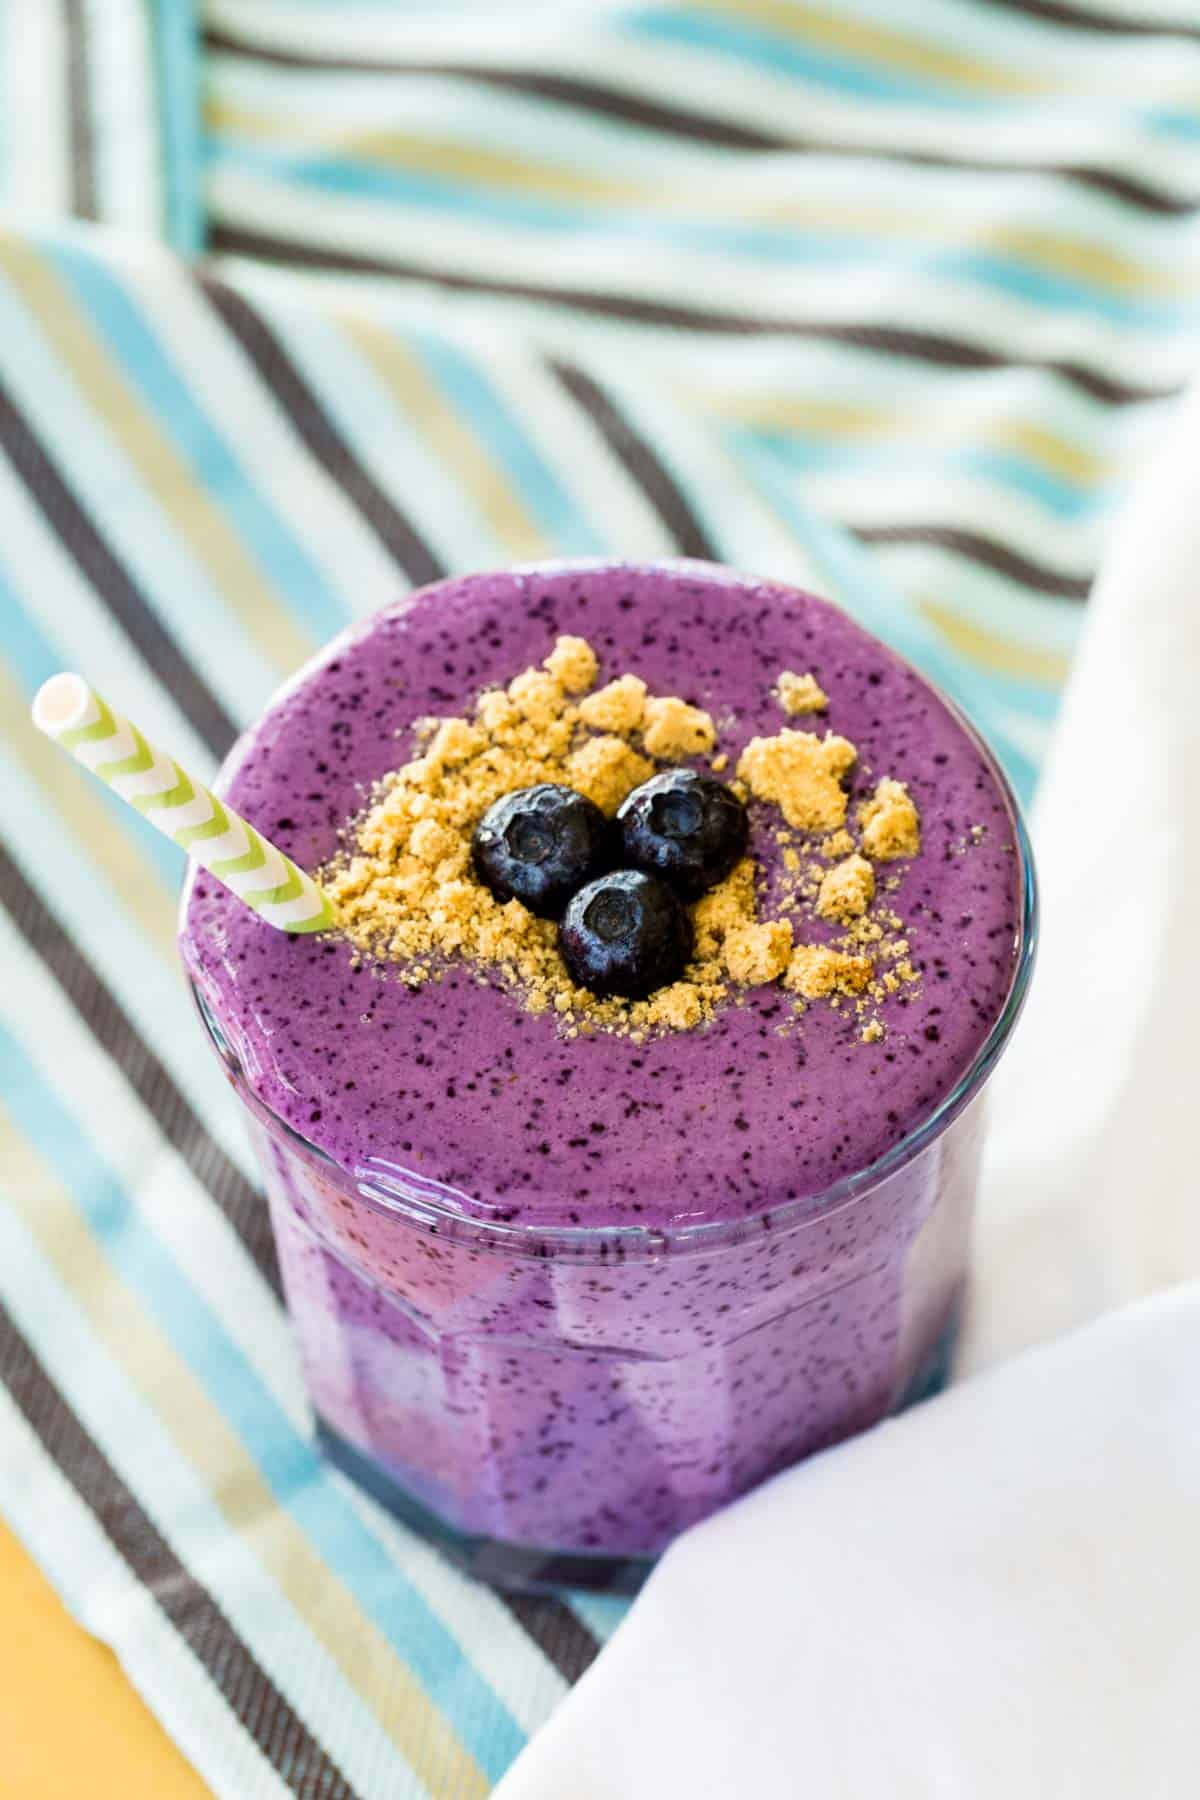 Blueberry Cheesecake Smoothie in a glass on a blue and brown striped napkin